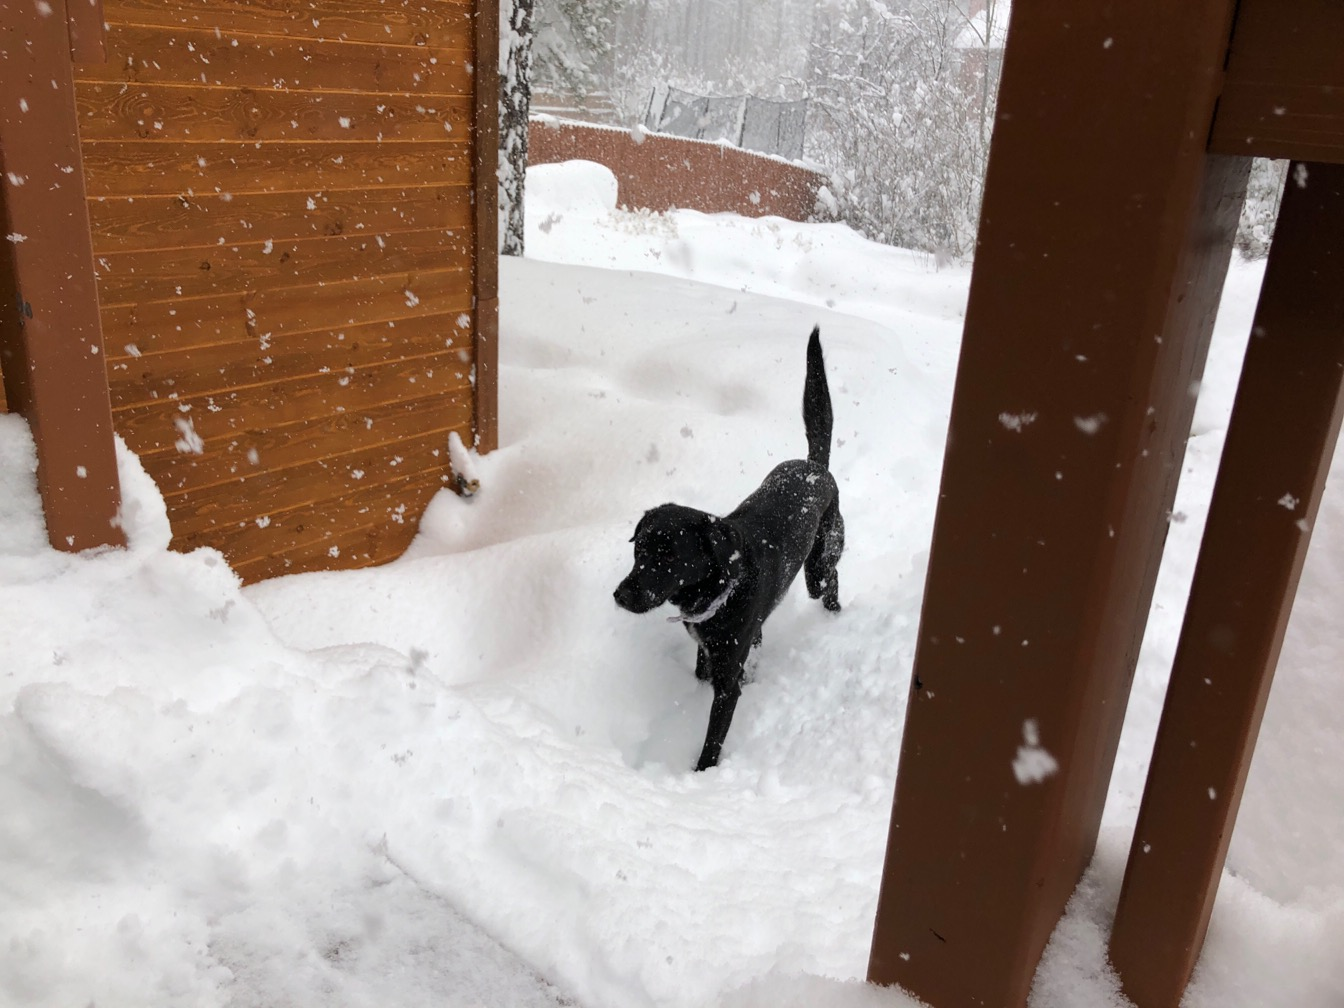 Black dog trotting through very deep snowdrifts